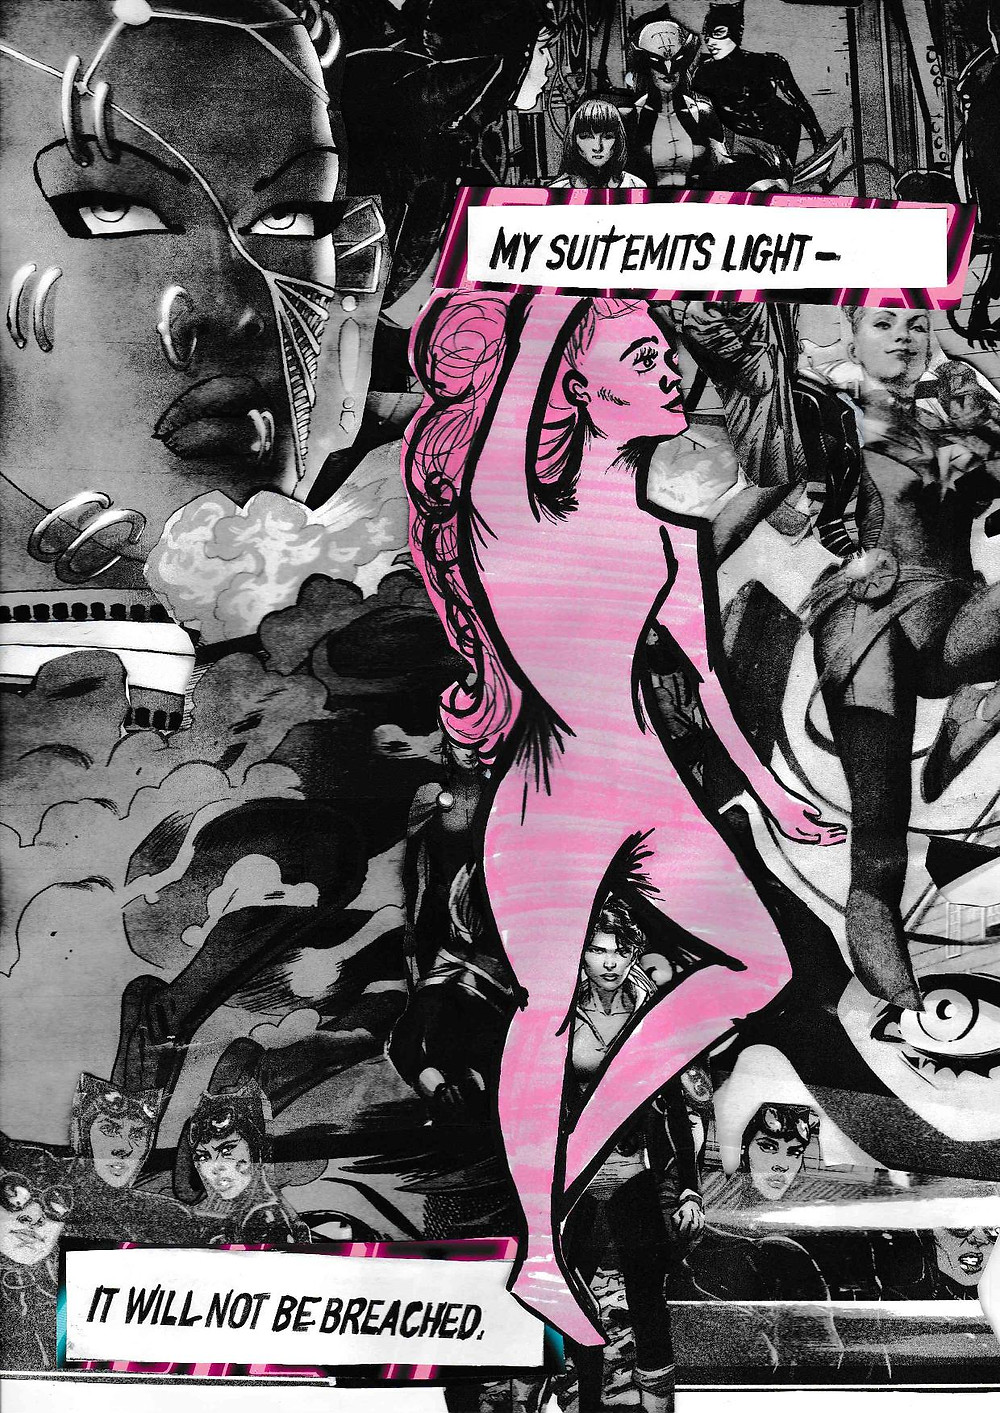 Monochrome collage featuring woman's faces with a long-haired figure at the forefront, with the words: 'My suit emits light - it will not be breached'.